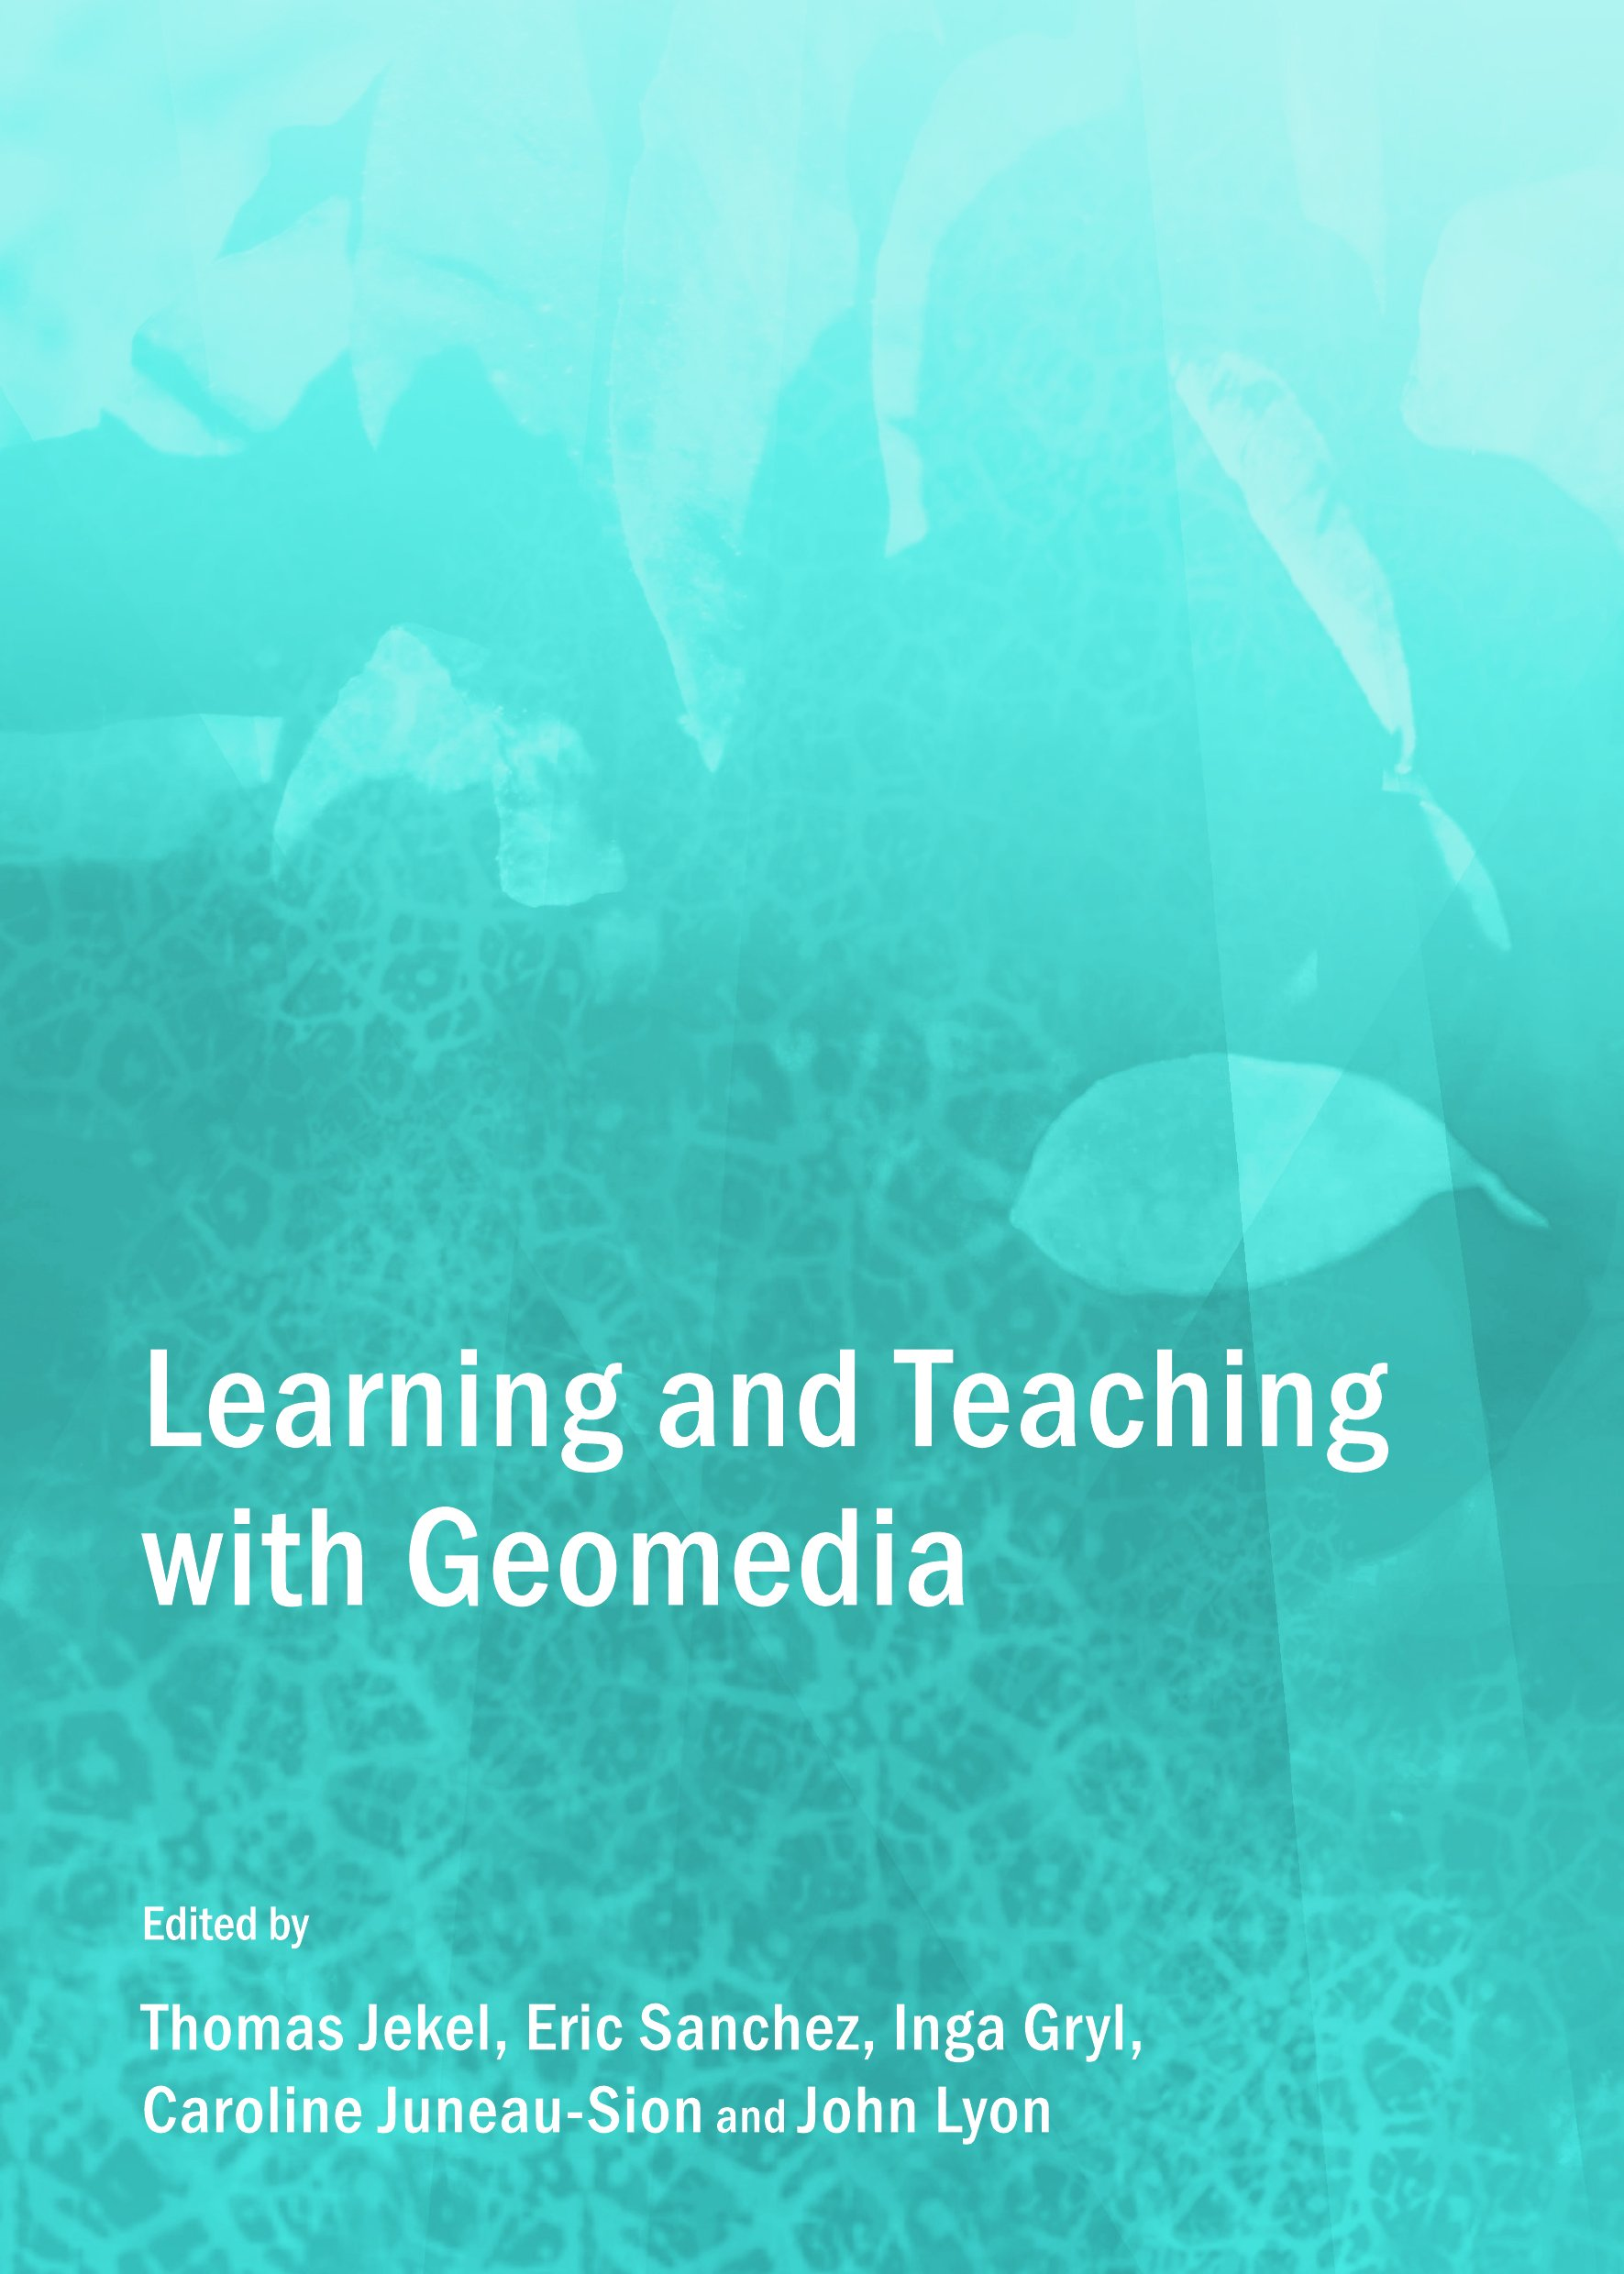 Learning and Teaching with Geomedia